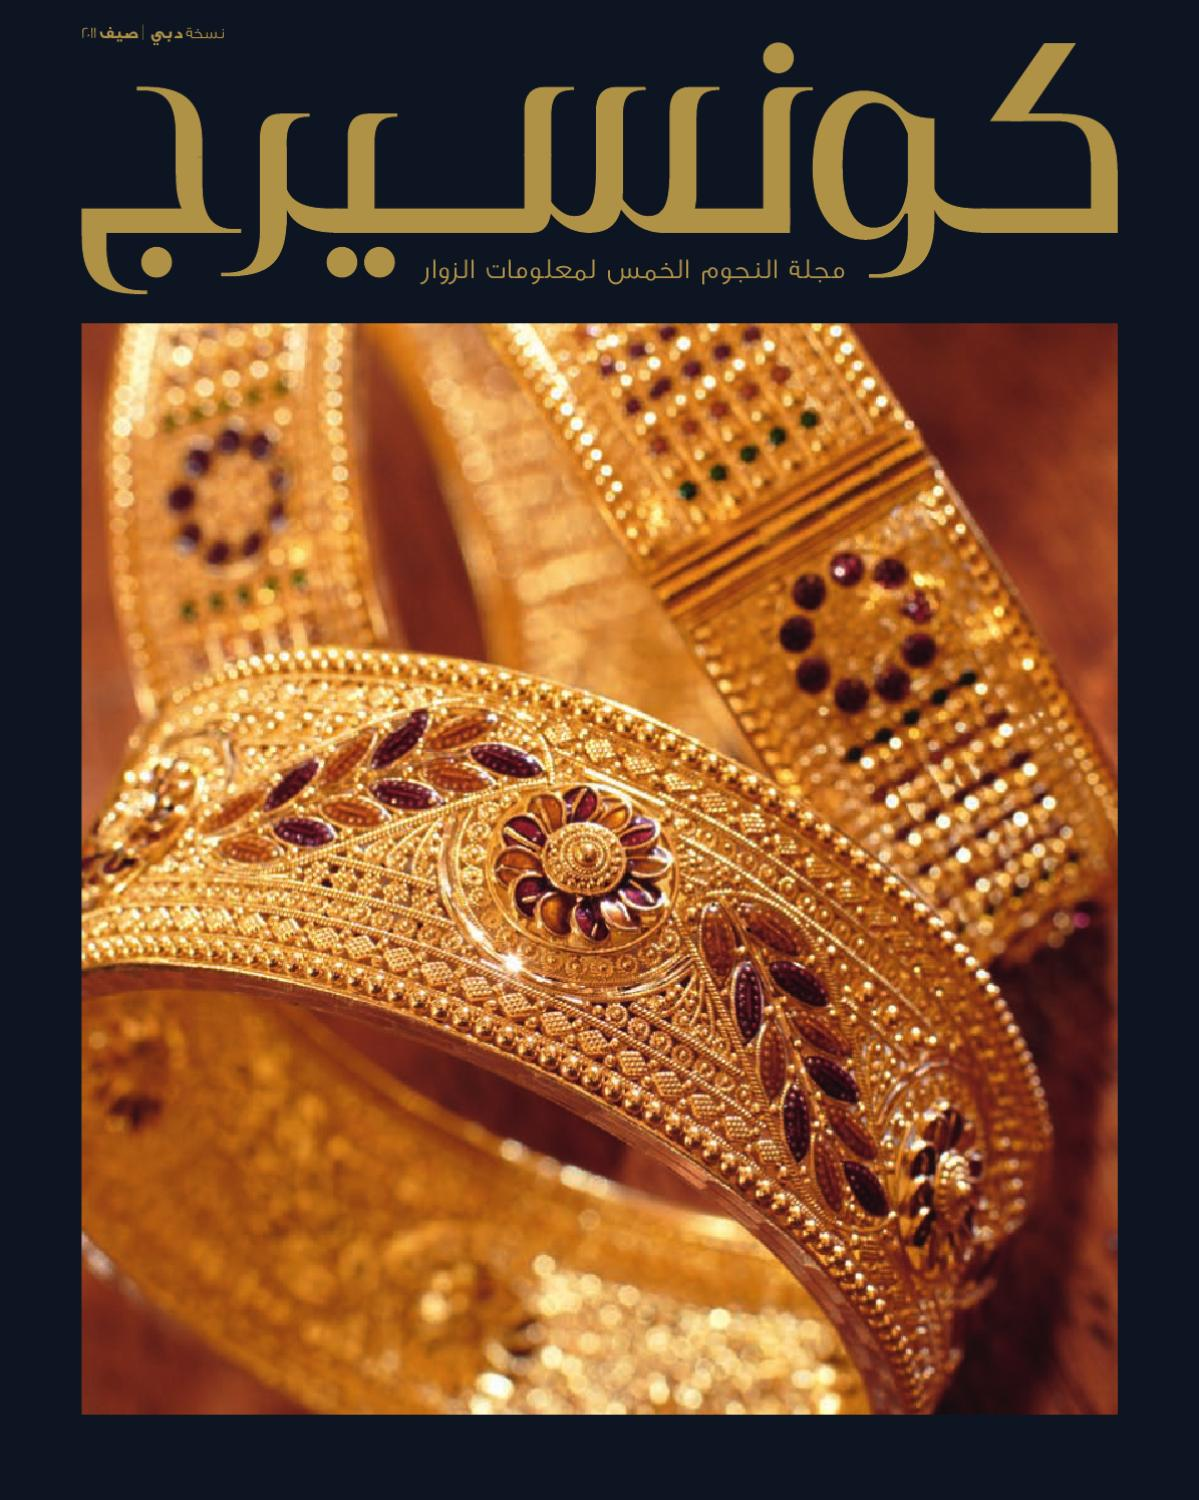 217ee139ed9b0 Concierge Arabic Magazine